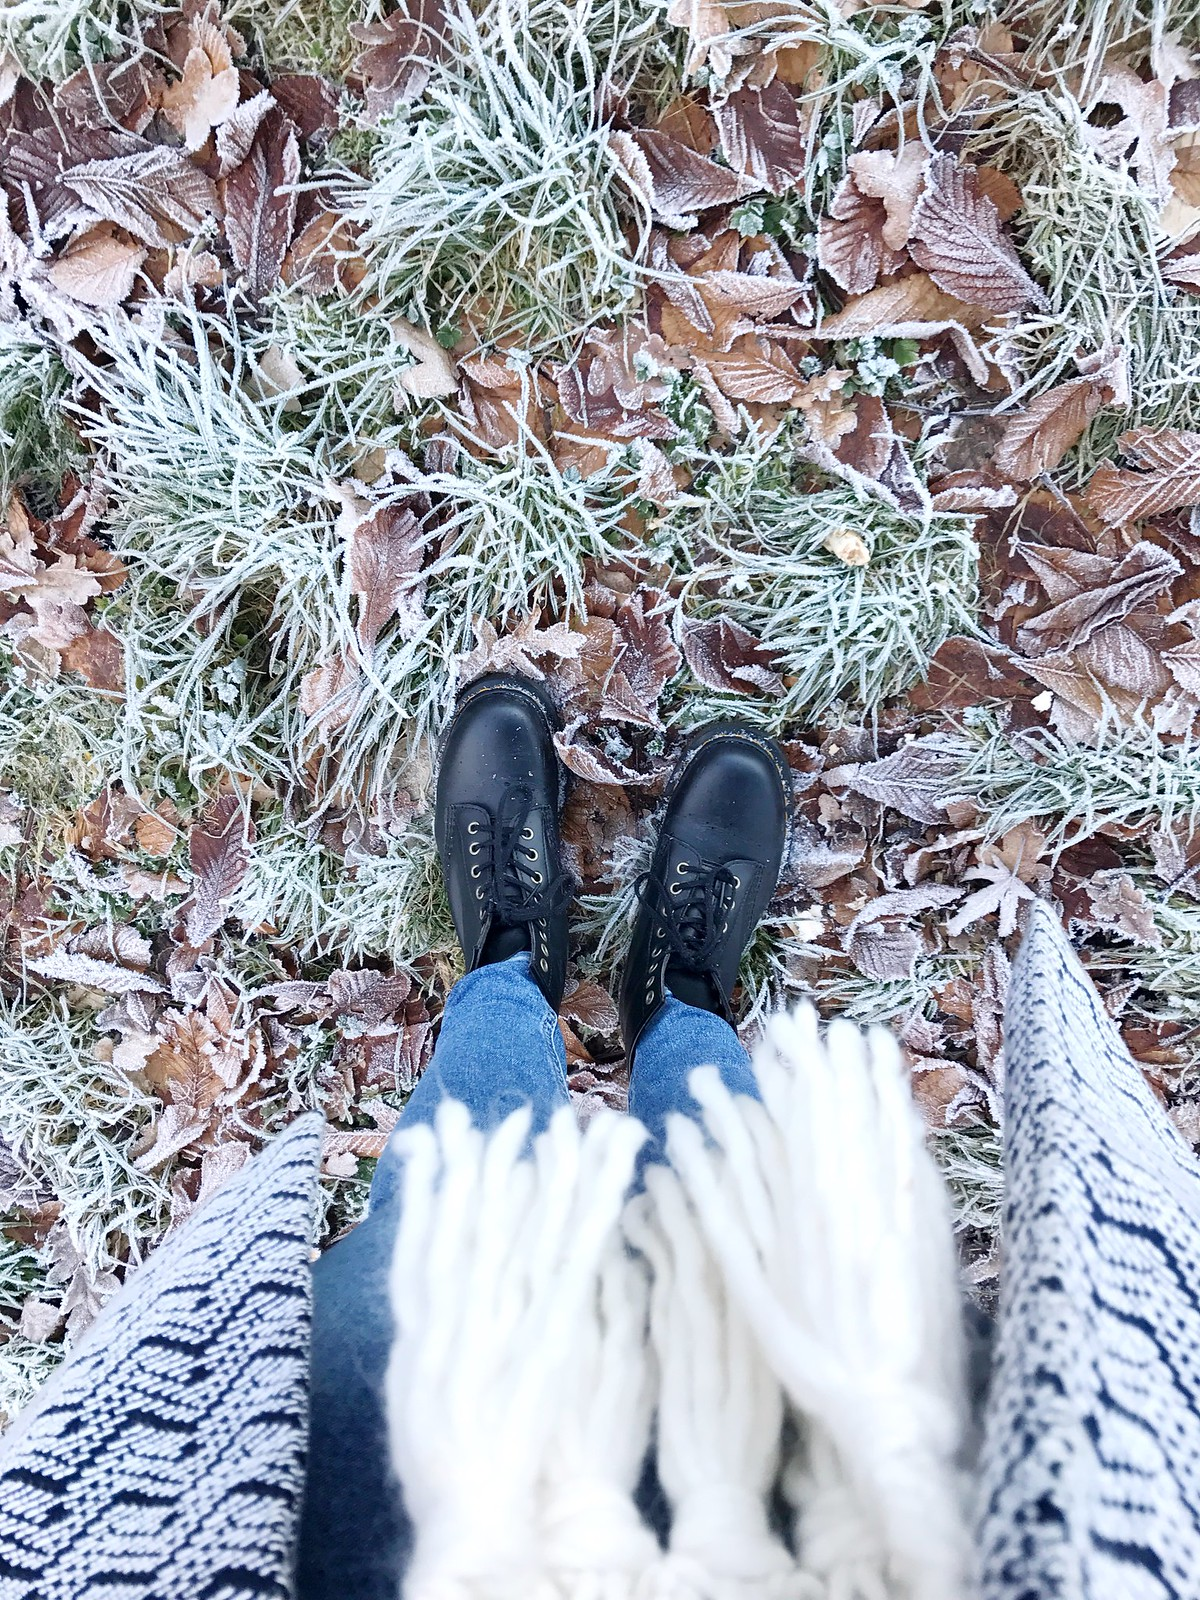 Vegan Doc Martens on frozen grass and leaves